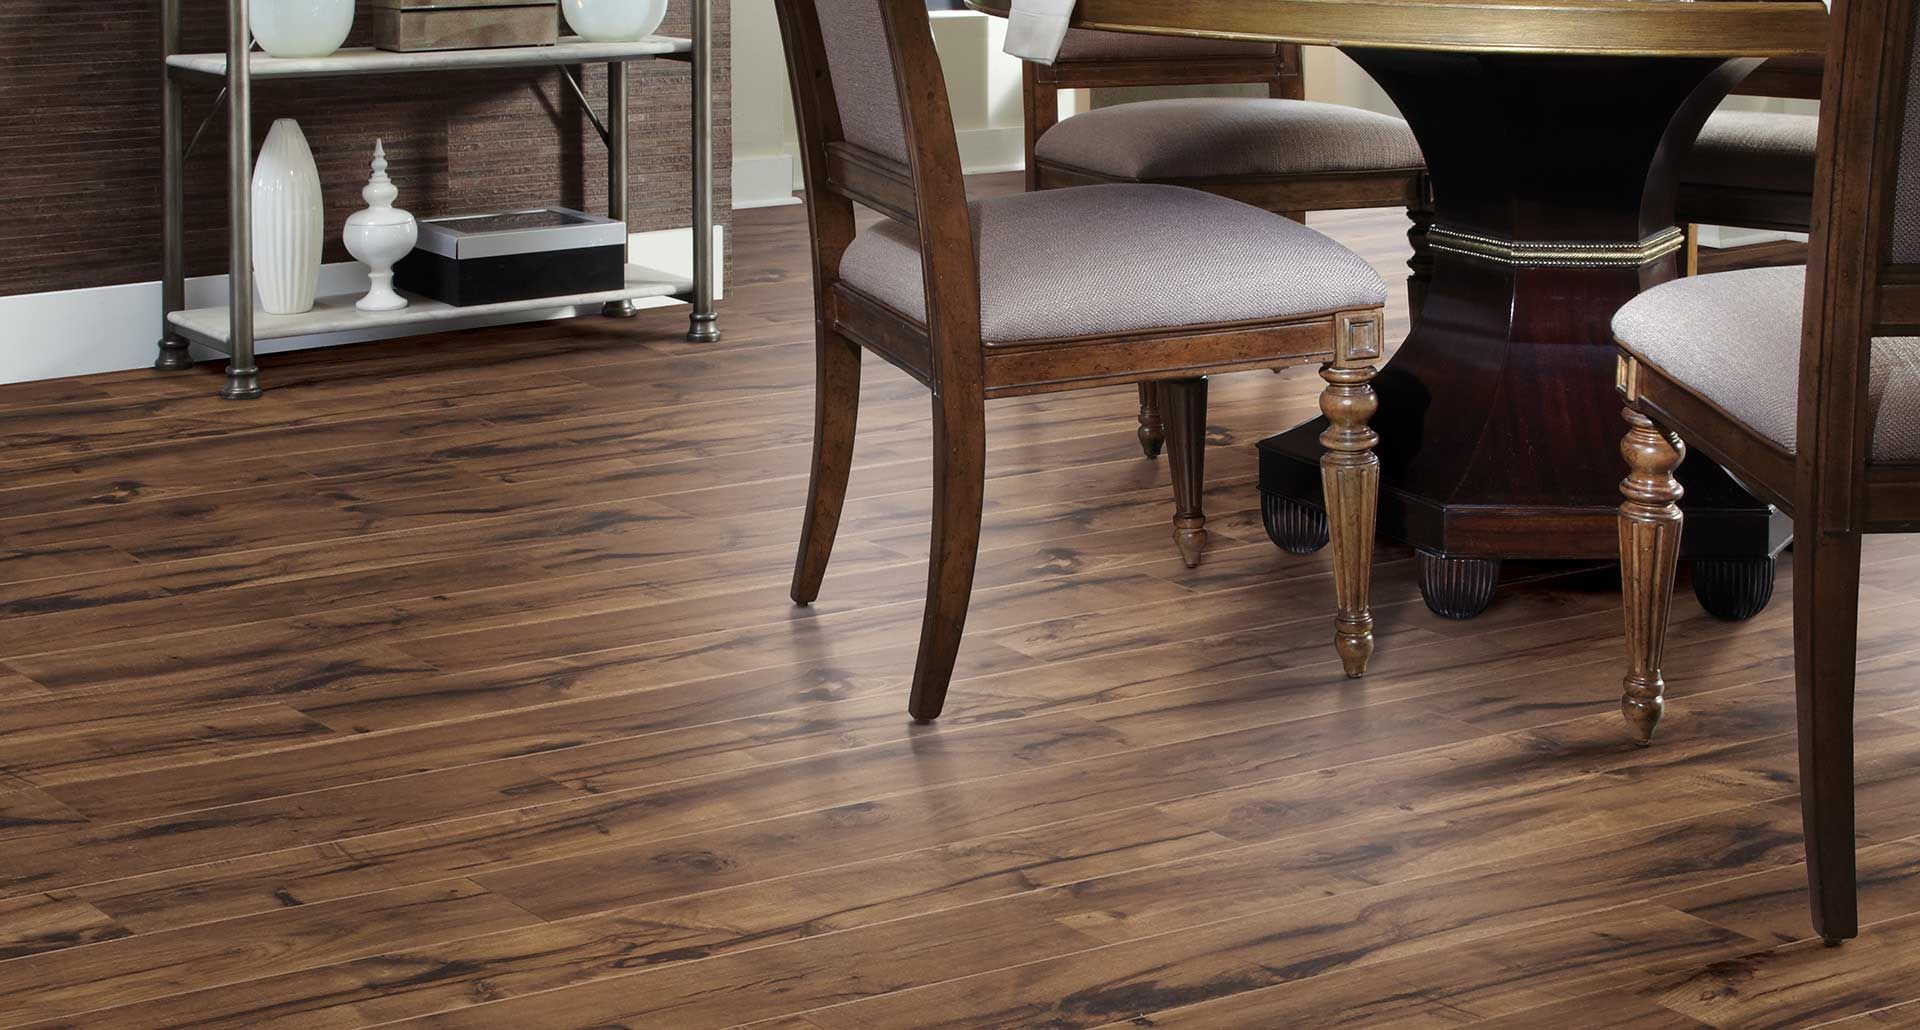 Creekbed Hickory textured laminate floor Brown hickory wood finish